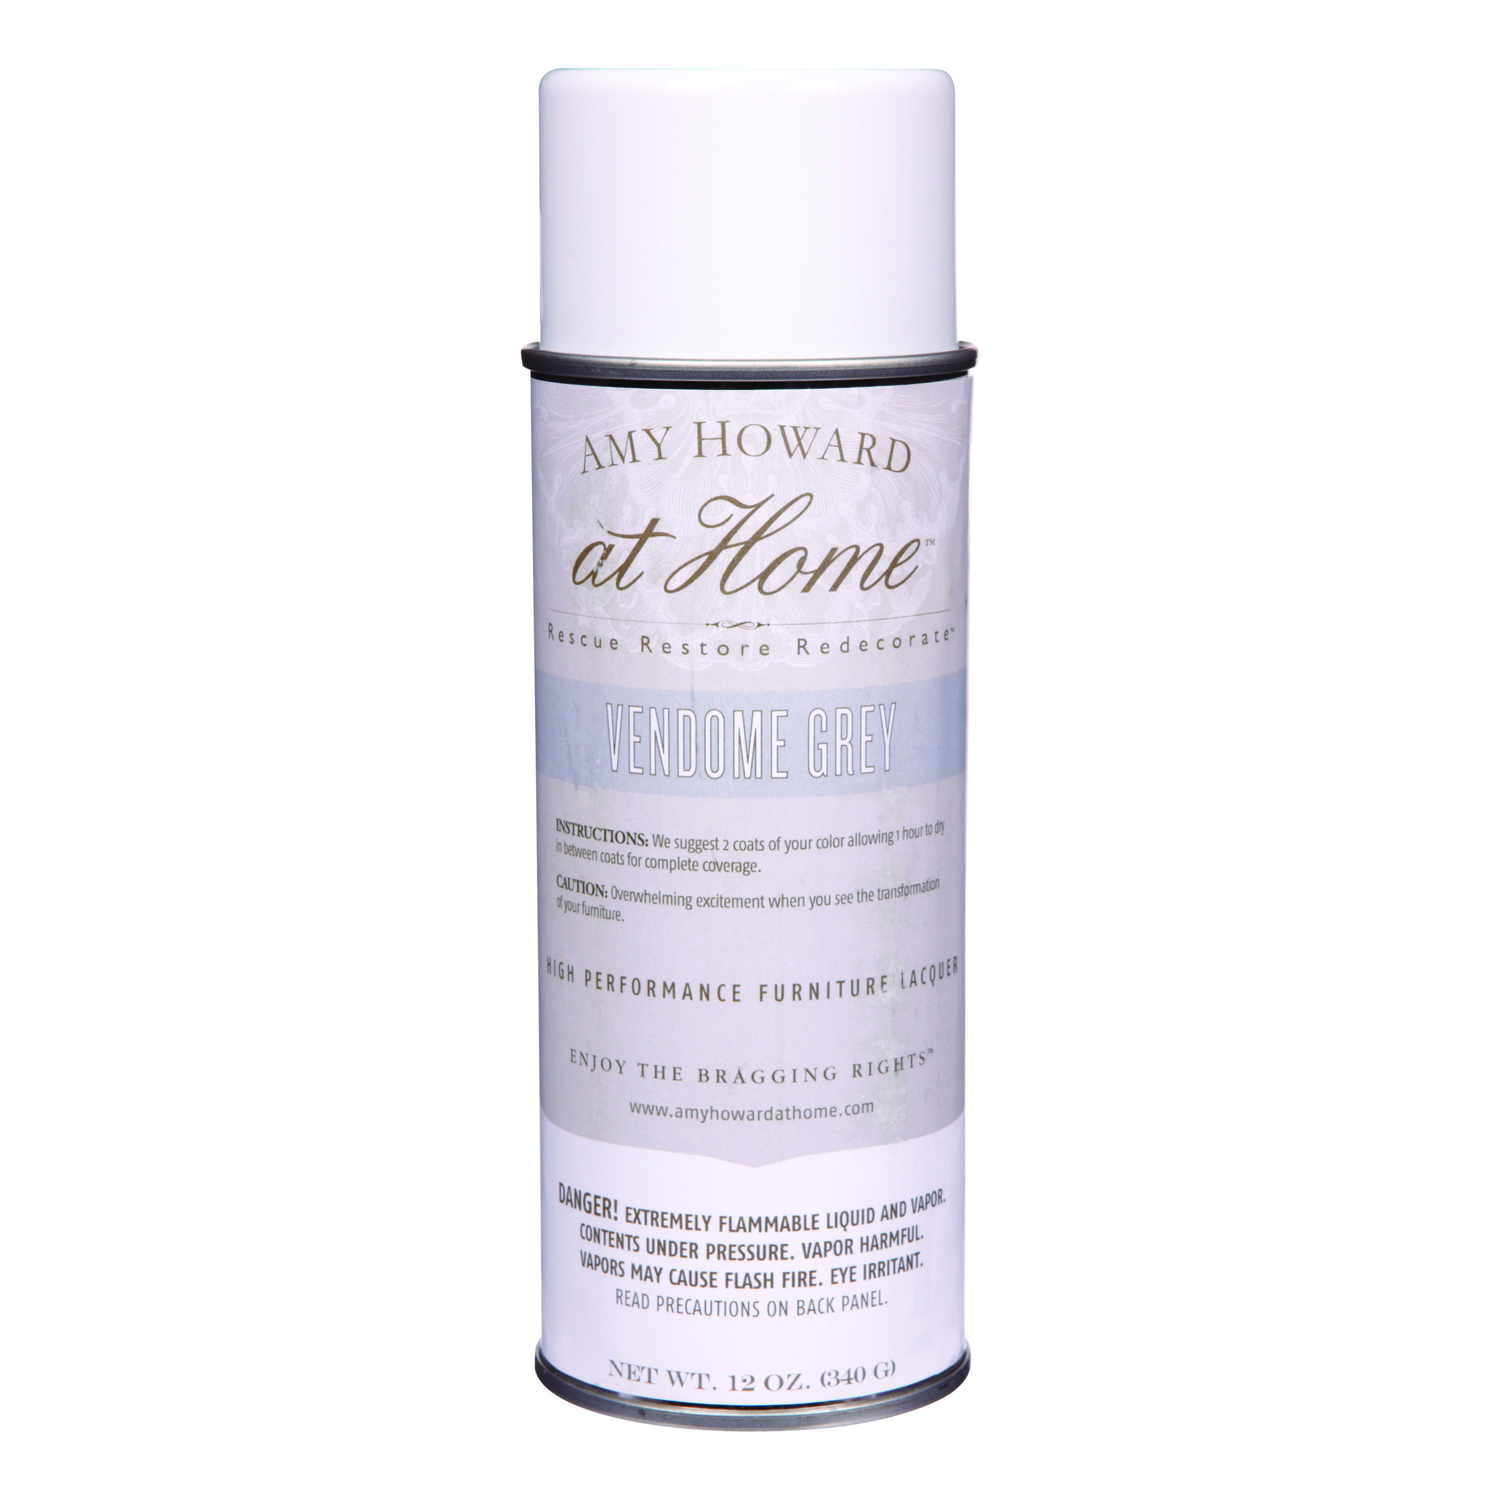 Amy Howard at Home  Gloss  Vendome Grey  High Performance Furniture Lacquer Spray  12 oz.